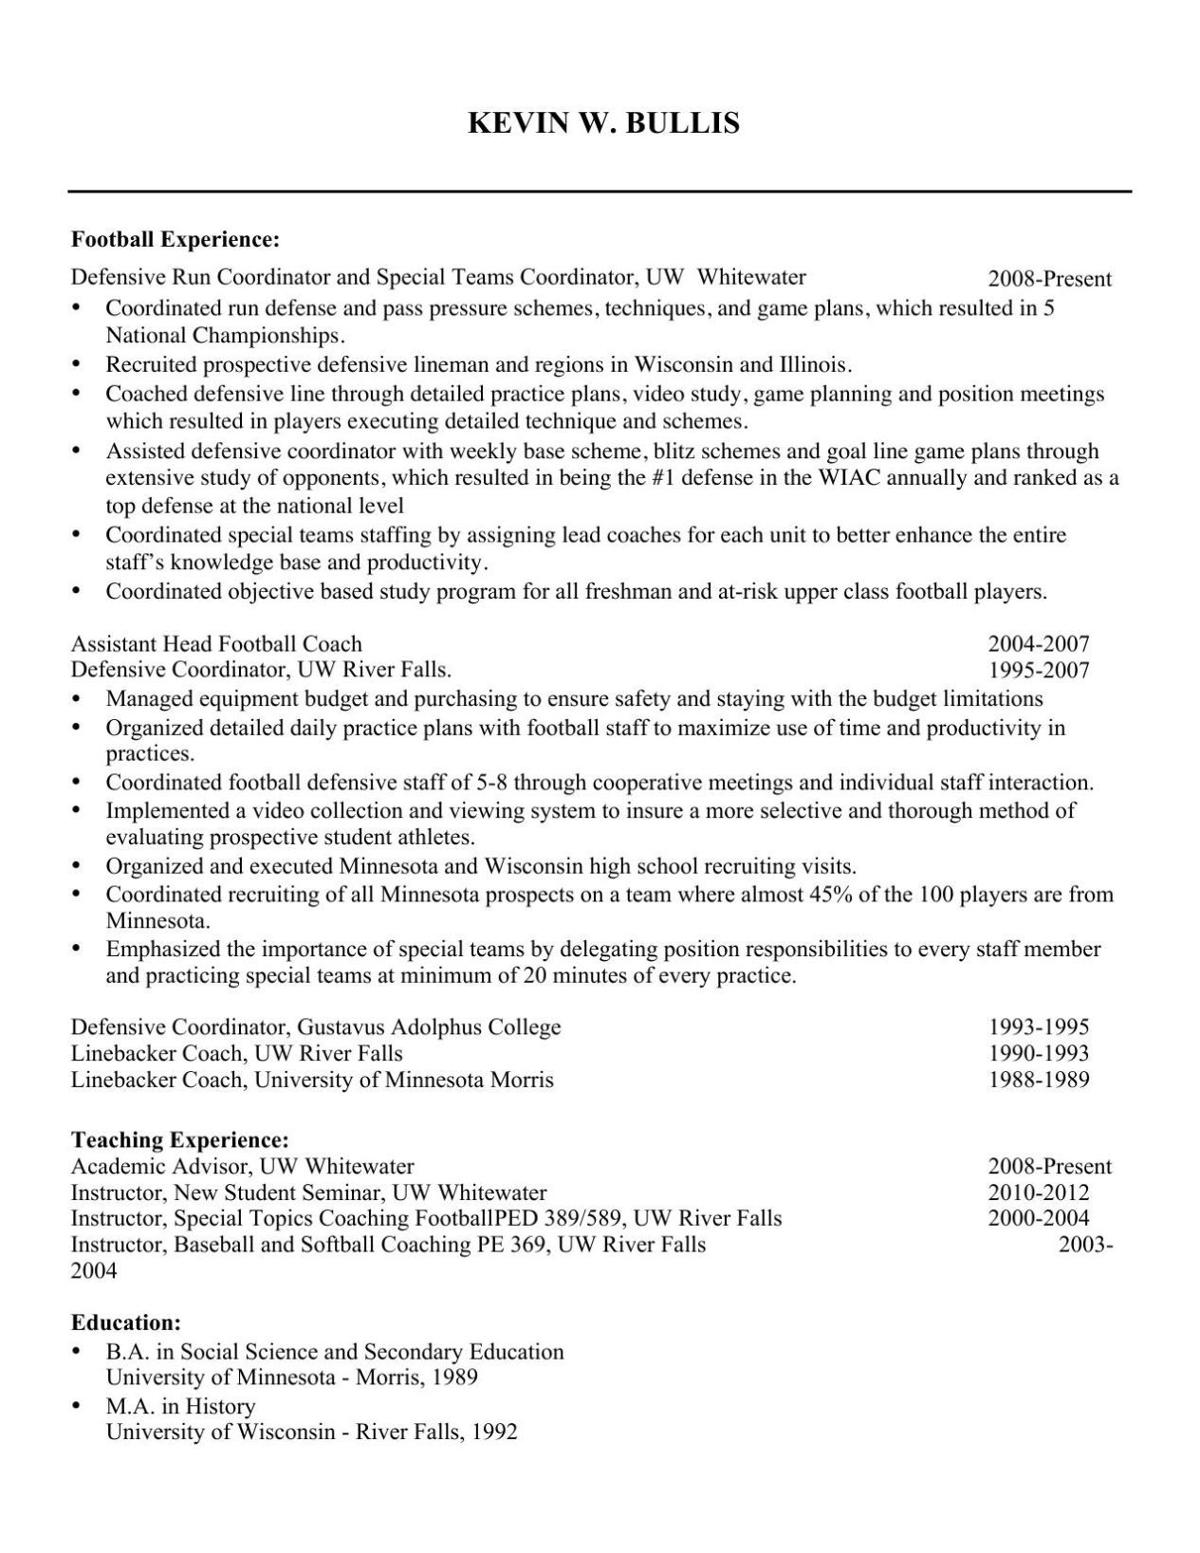 Kevin Bullis Resume For Uw Whitewaters New Head Football Coach